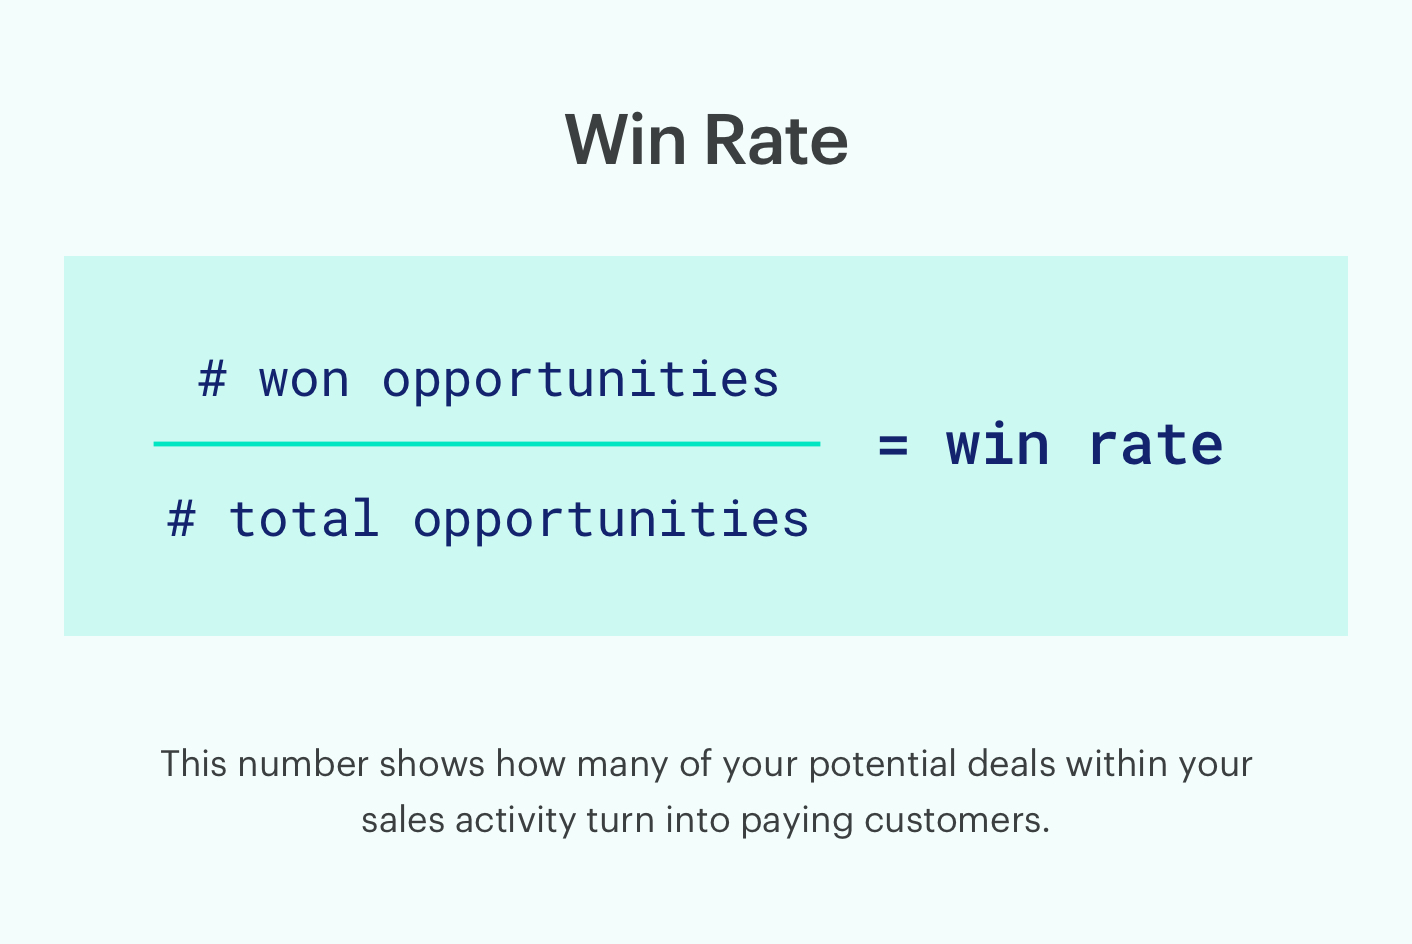 how to calculate win rate